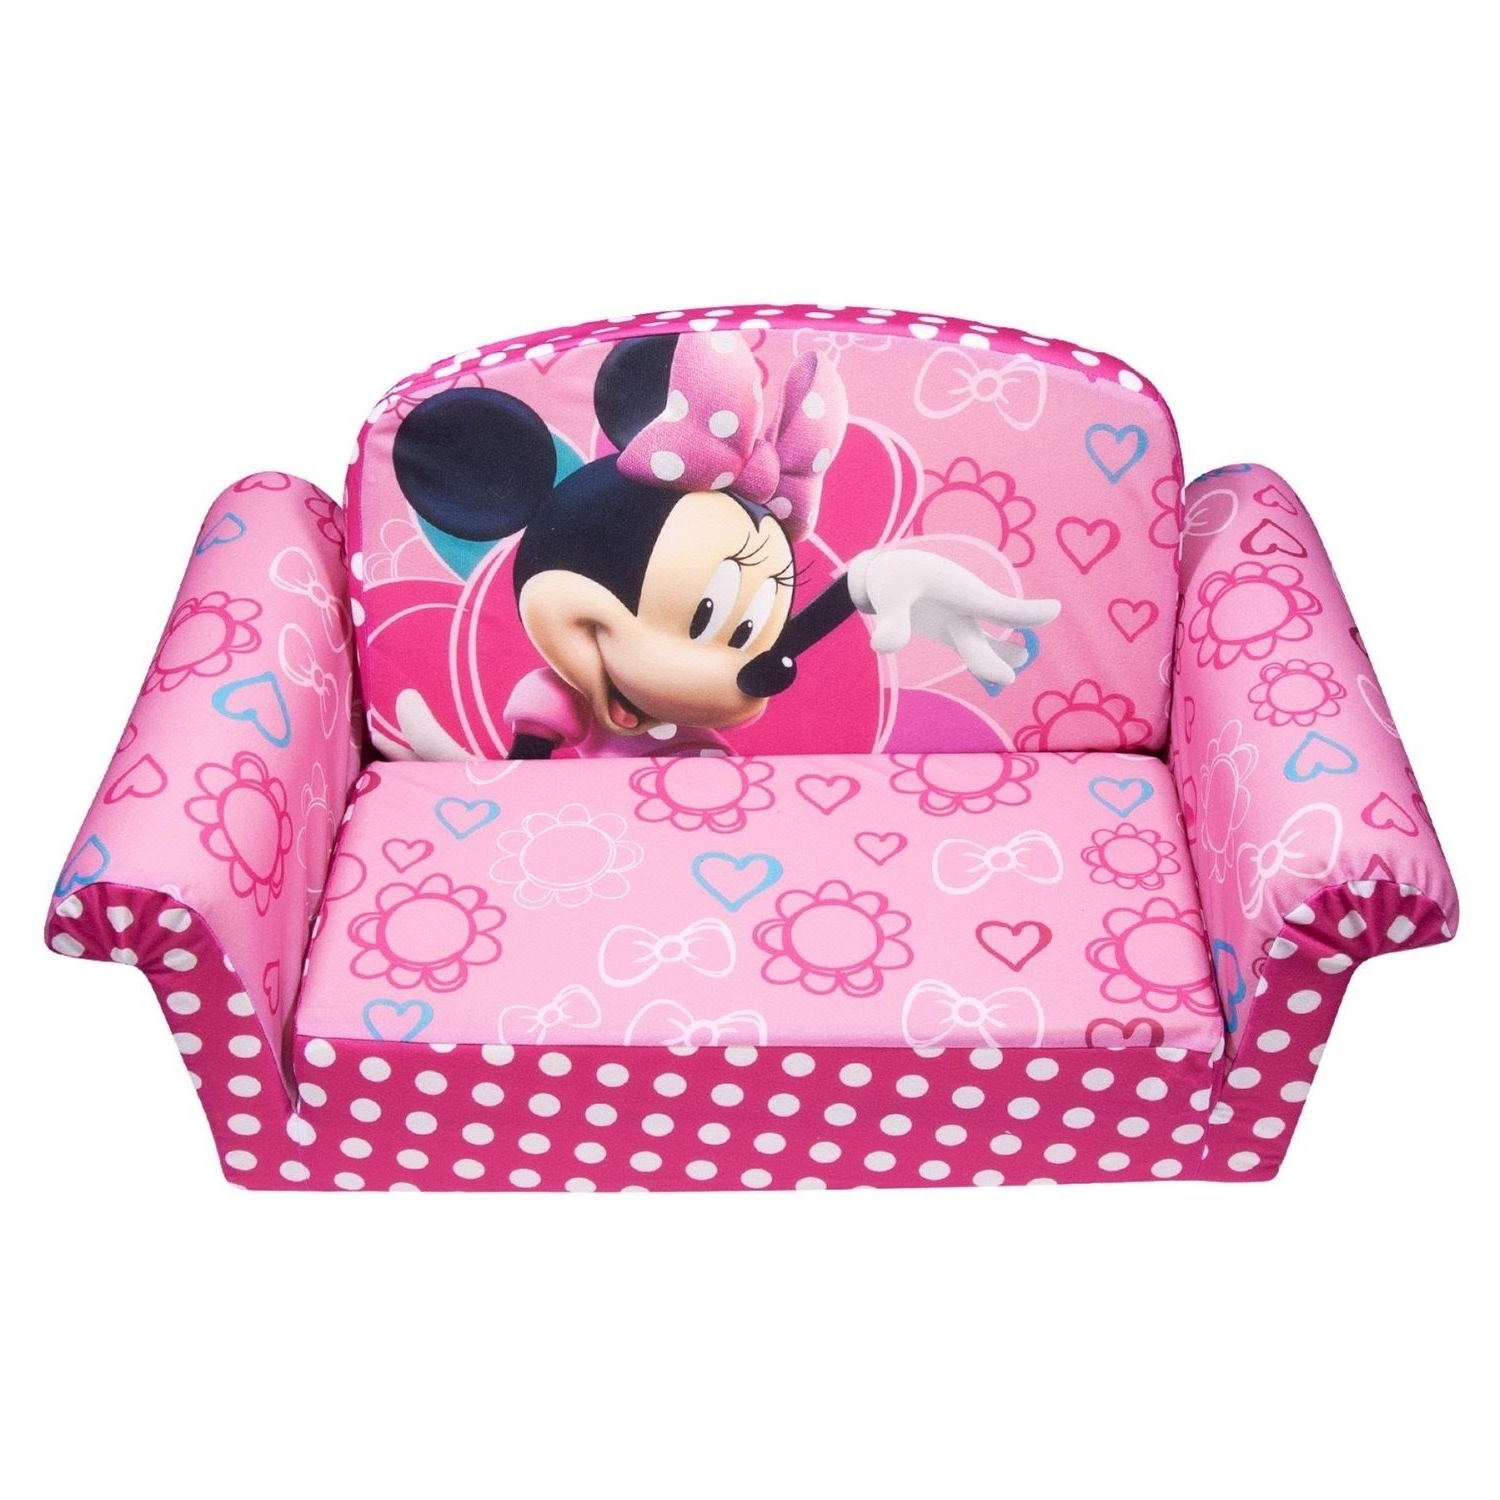 Flip Out Sofas Regarding Latest Review: Marshmallow Children's Furniture – 2 In 1 Flip Open Sofa (View 4 of 20)